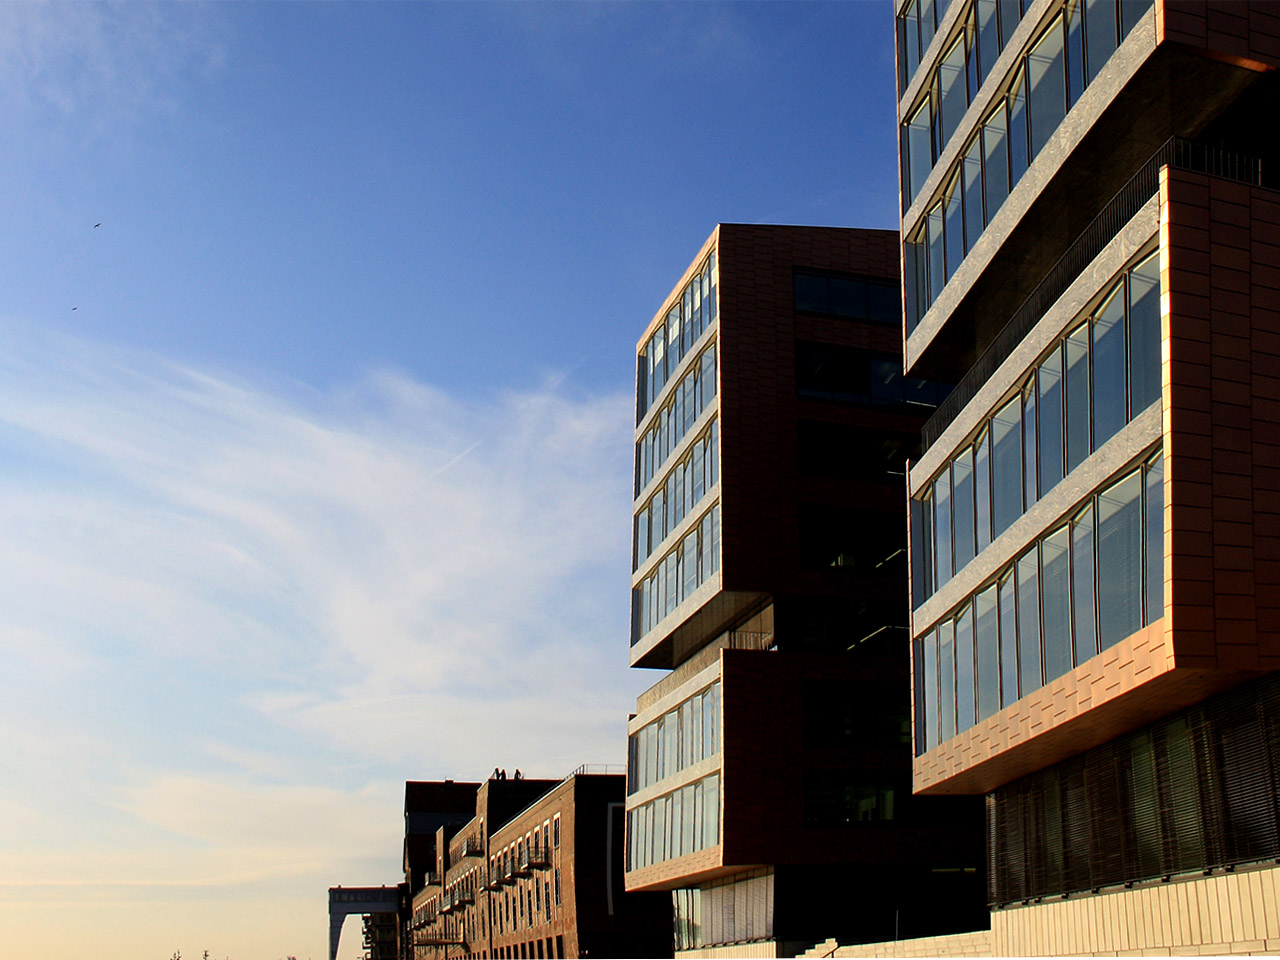 Twin Tower Dachterrasse, Terrassendielen